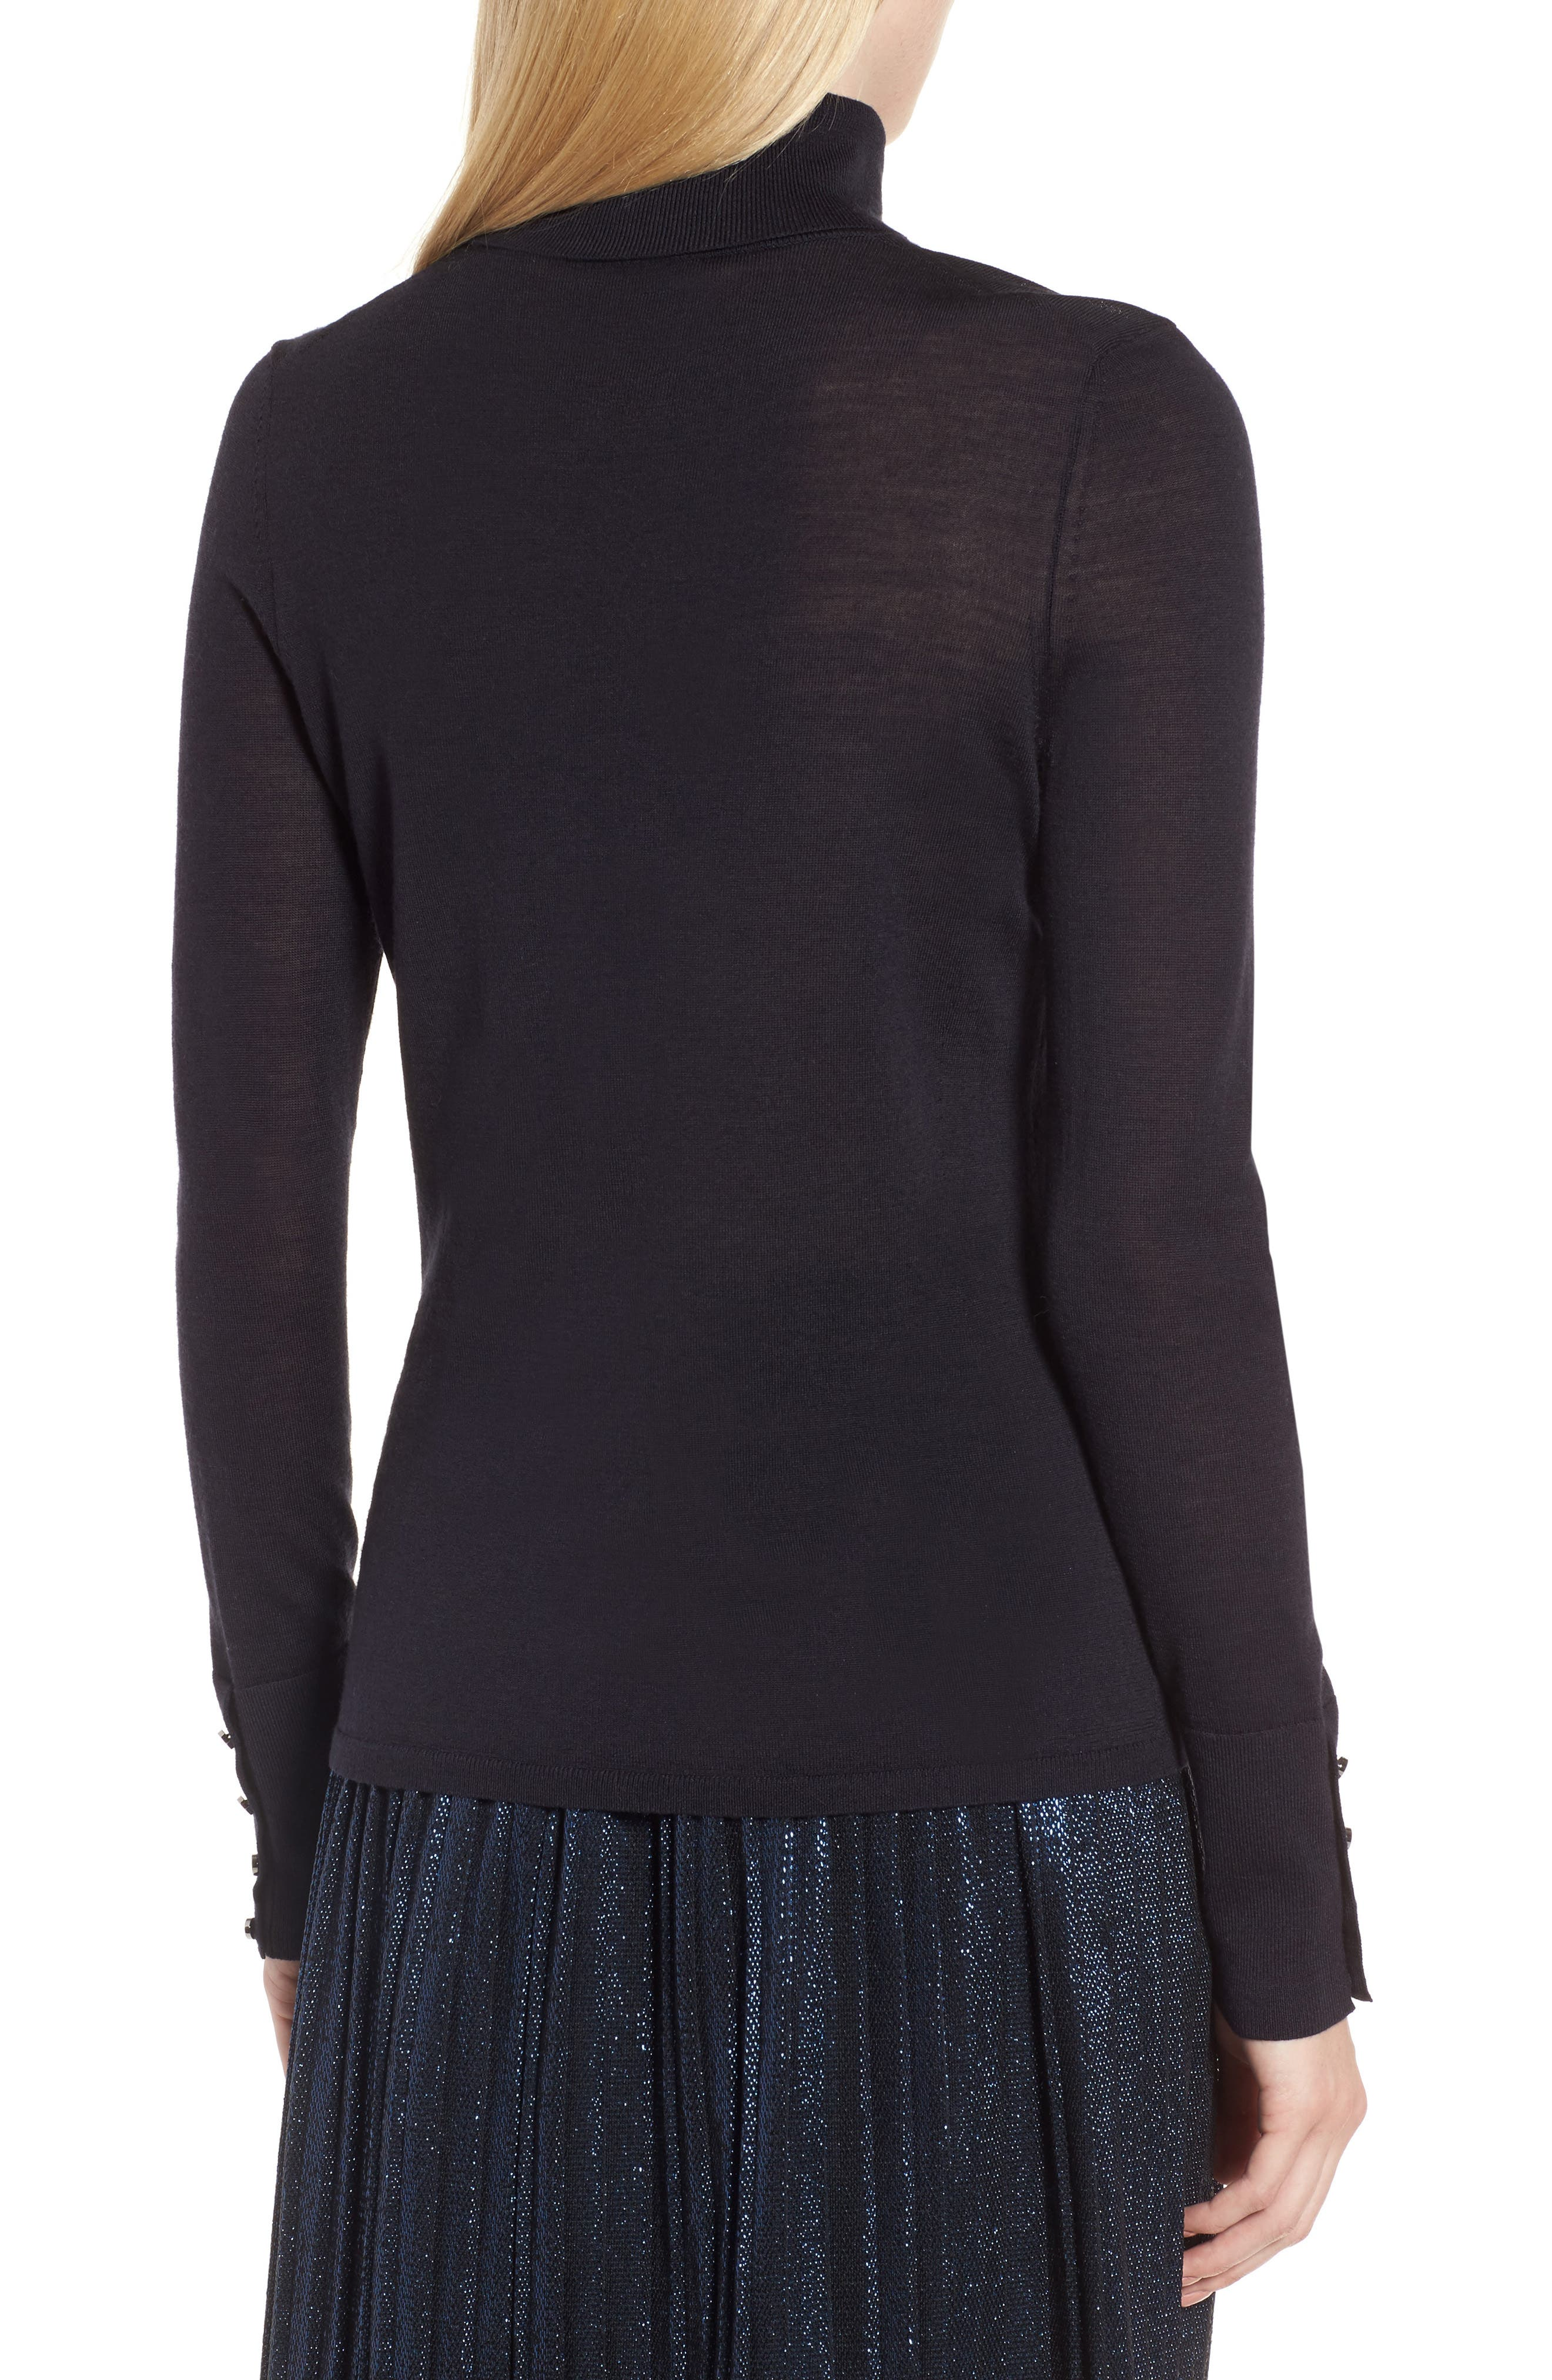 Farrella Wool Turtleneck Sweater,                             Alternate thumbnail 2, color,                             Navy